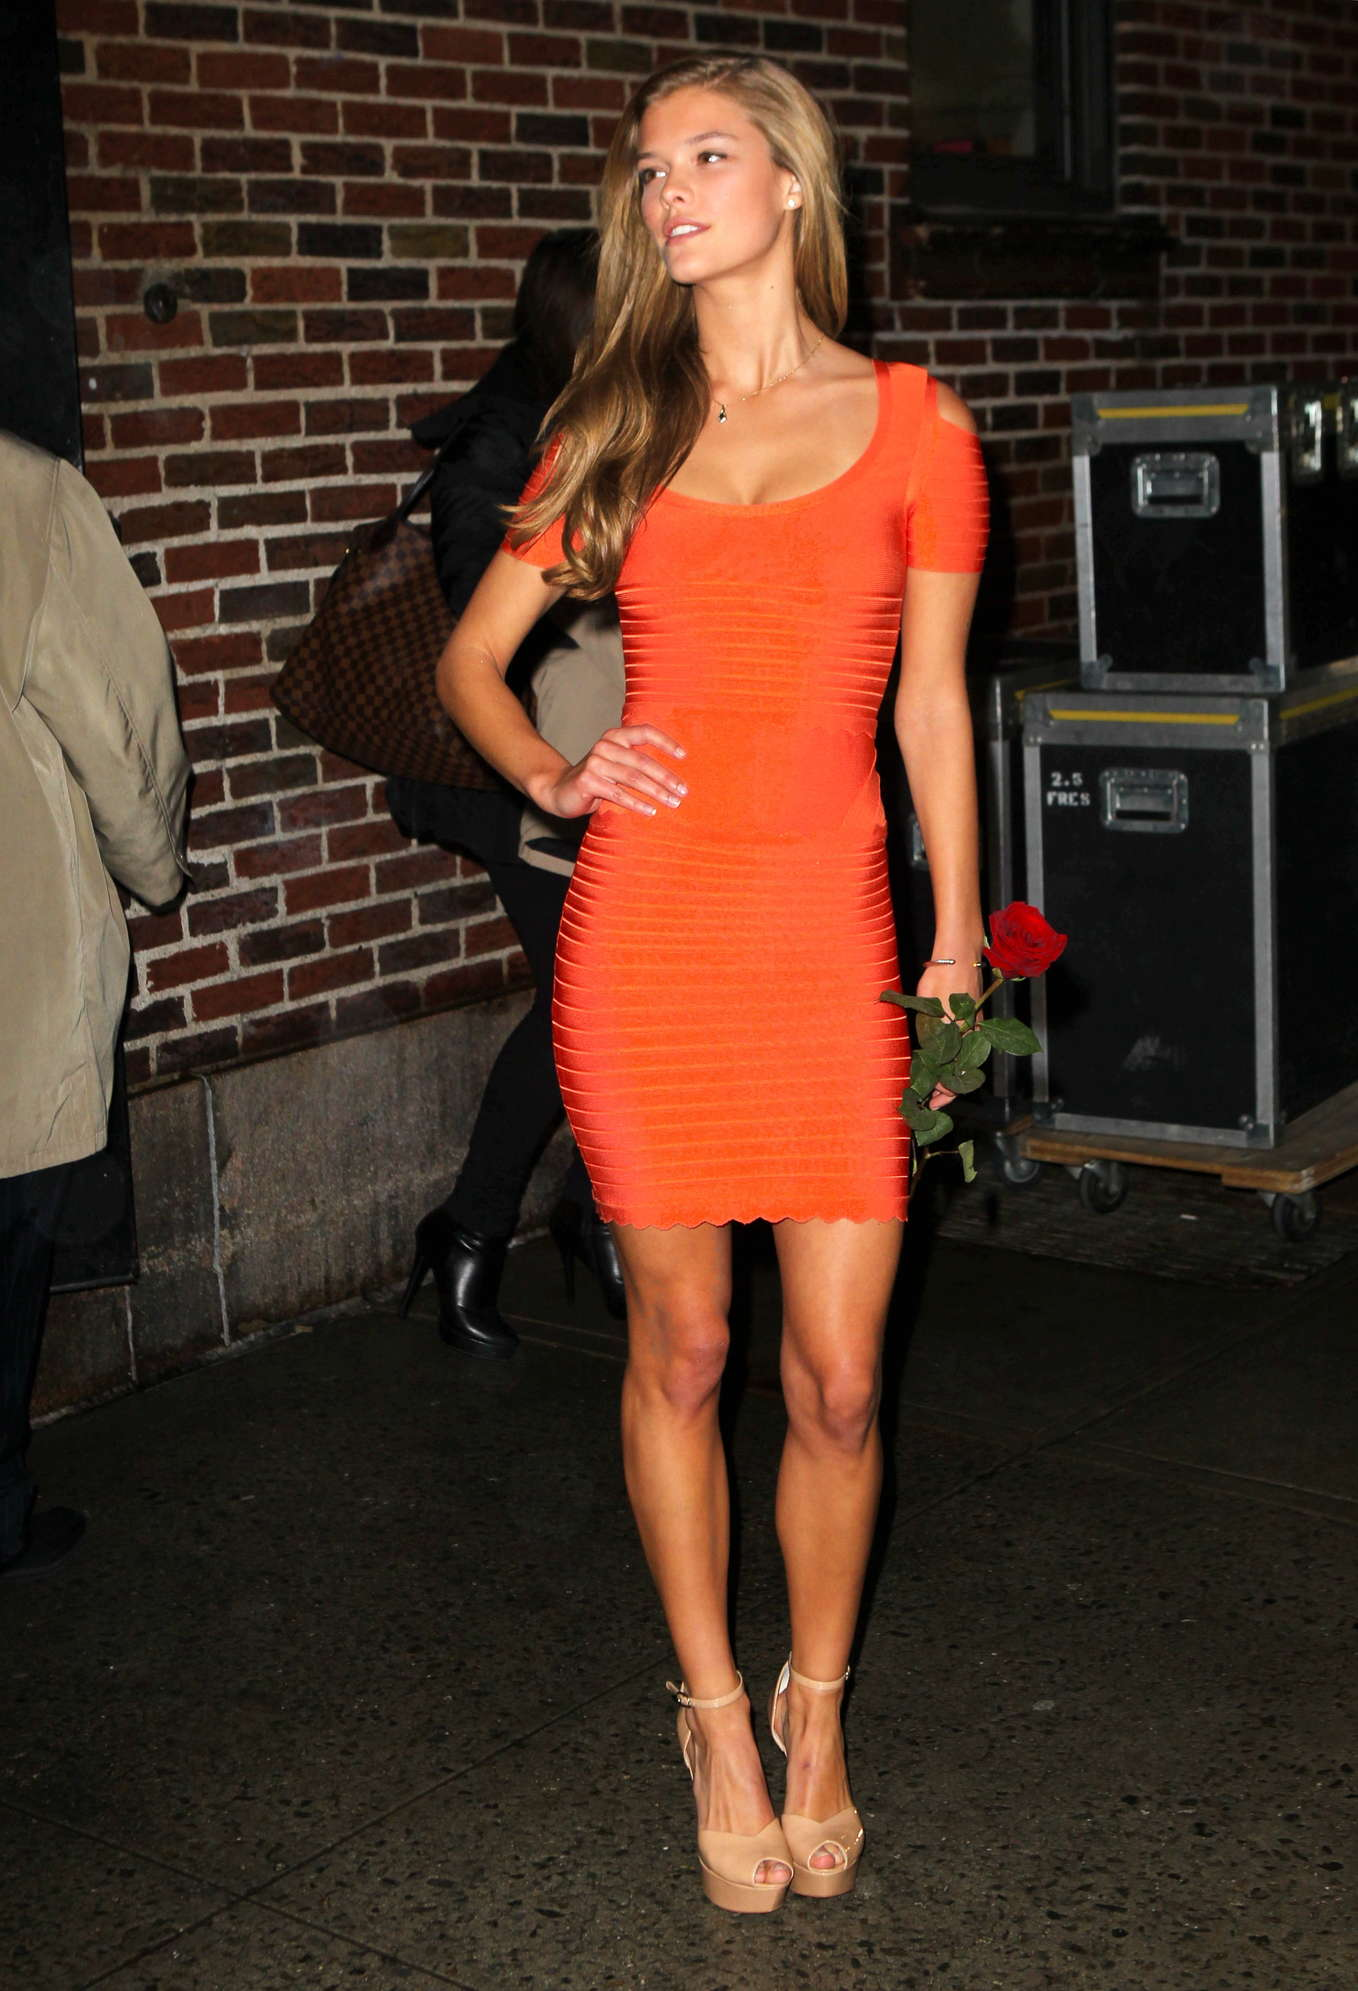 Nina-Agdal-In-Orange-Dress--02